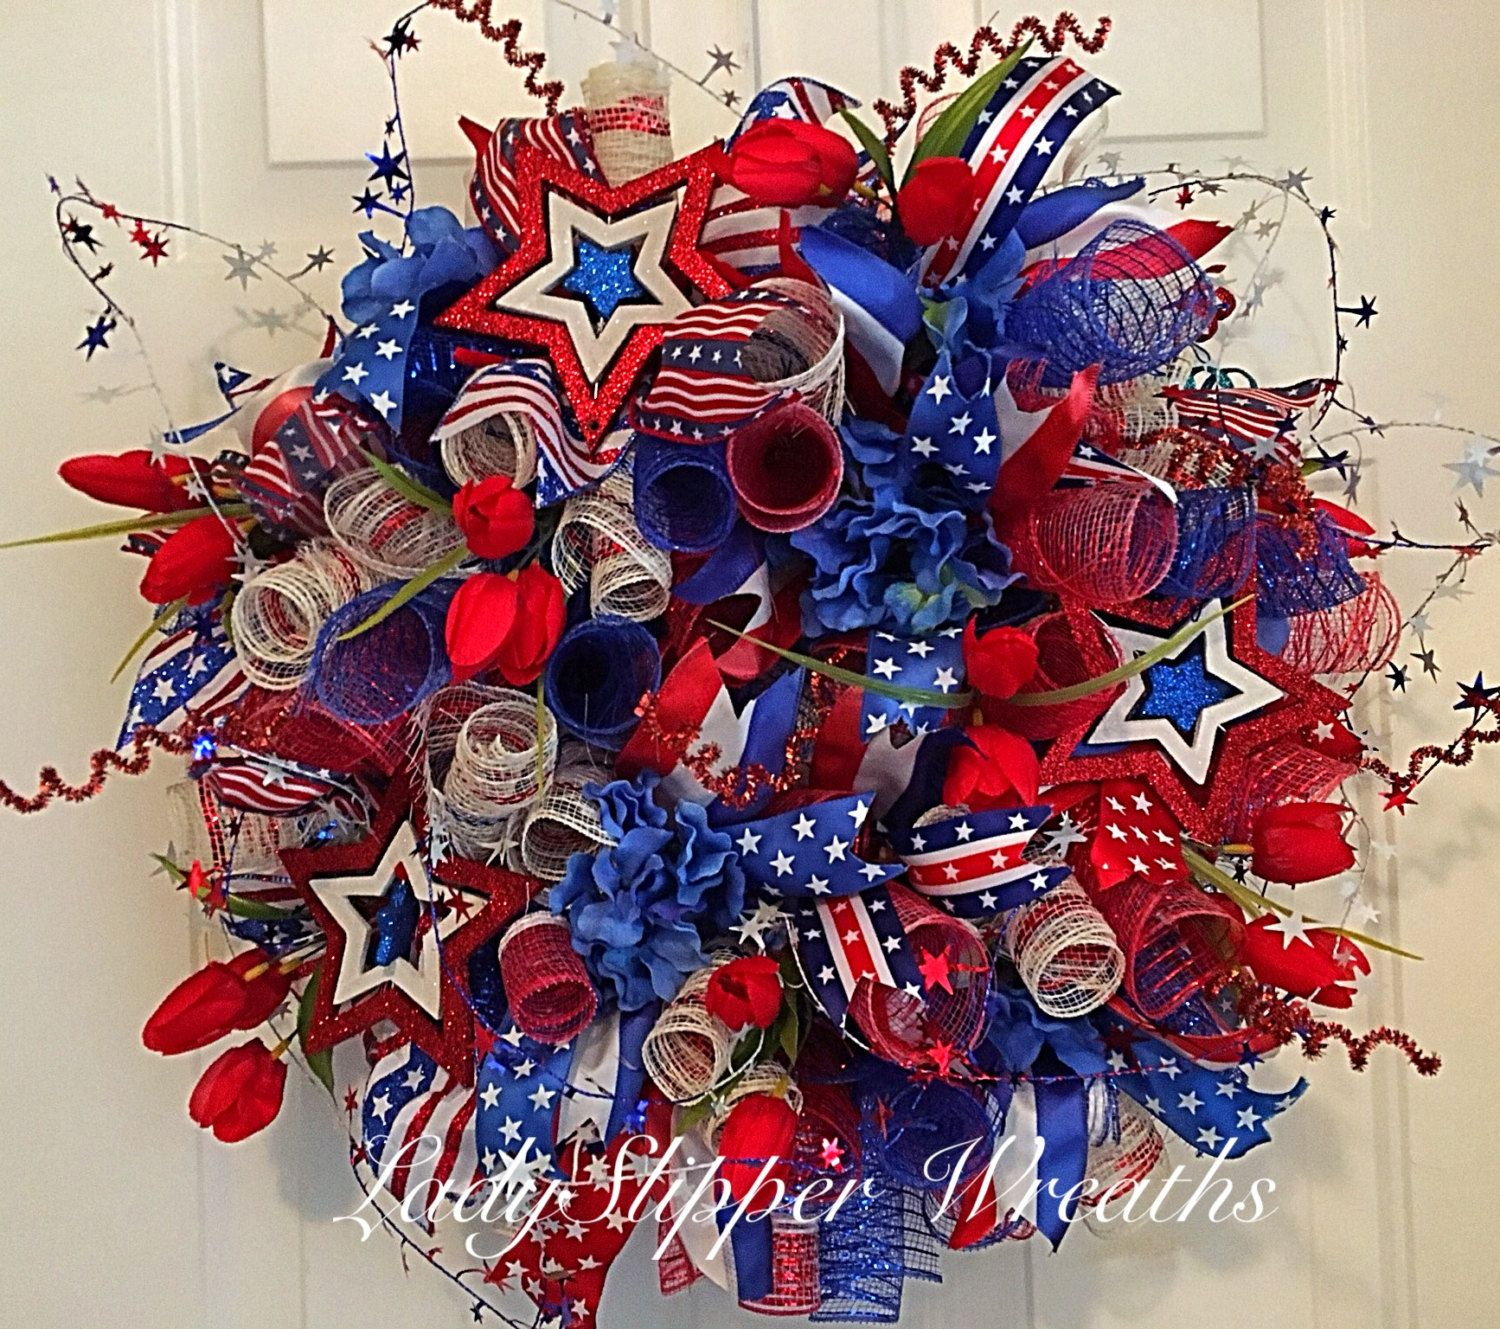 Summer Deco Mesh Wreath, Deco Mesh Wreath, Patriotic Deco Mesh Wreath, Patriotic Wreath, Fourth of July Wreath, Red White and Blue Wreath by LadySlipperWreaths on Etsy #decomeshwreaths